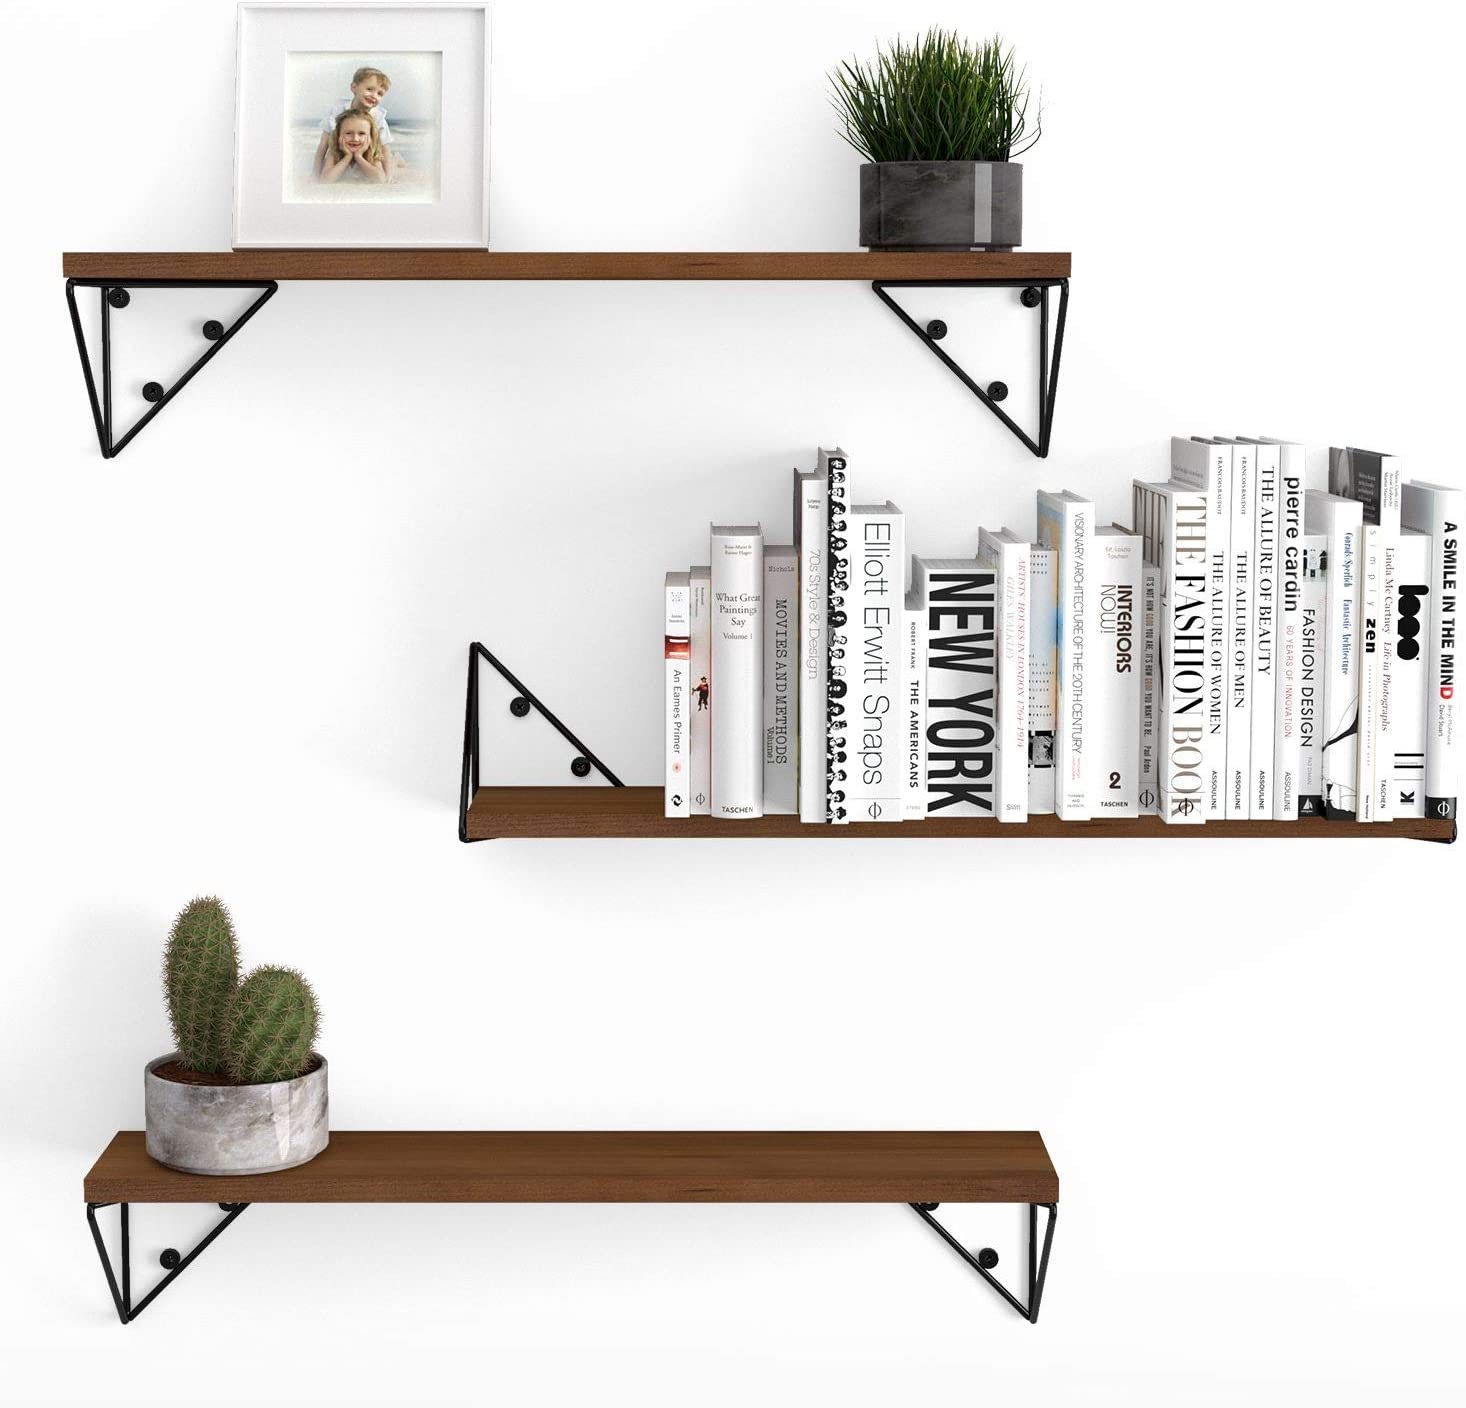 Wallniture Pigna Floating Shelves for Living Room Wall Decor, Bookshelf and Shelving Unit for Organization and Storage, Walnut Rustic Wood Shelf Set with Triangle Shelf Brackets, Set of 3